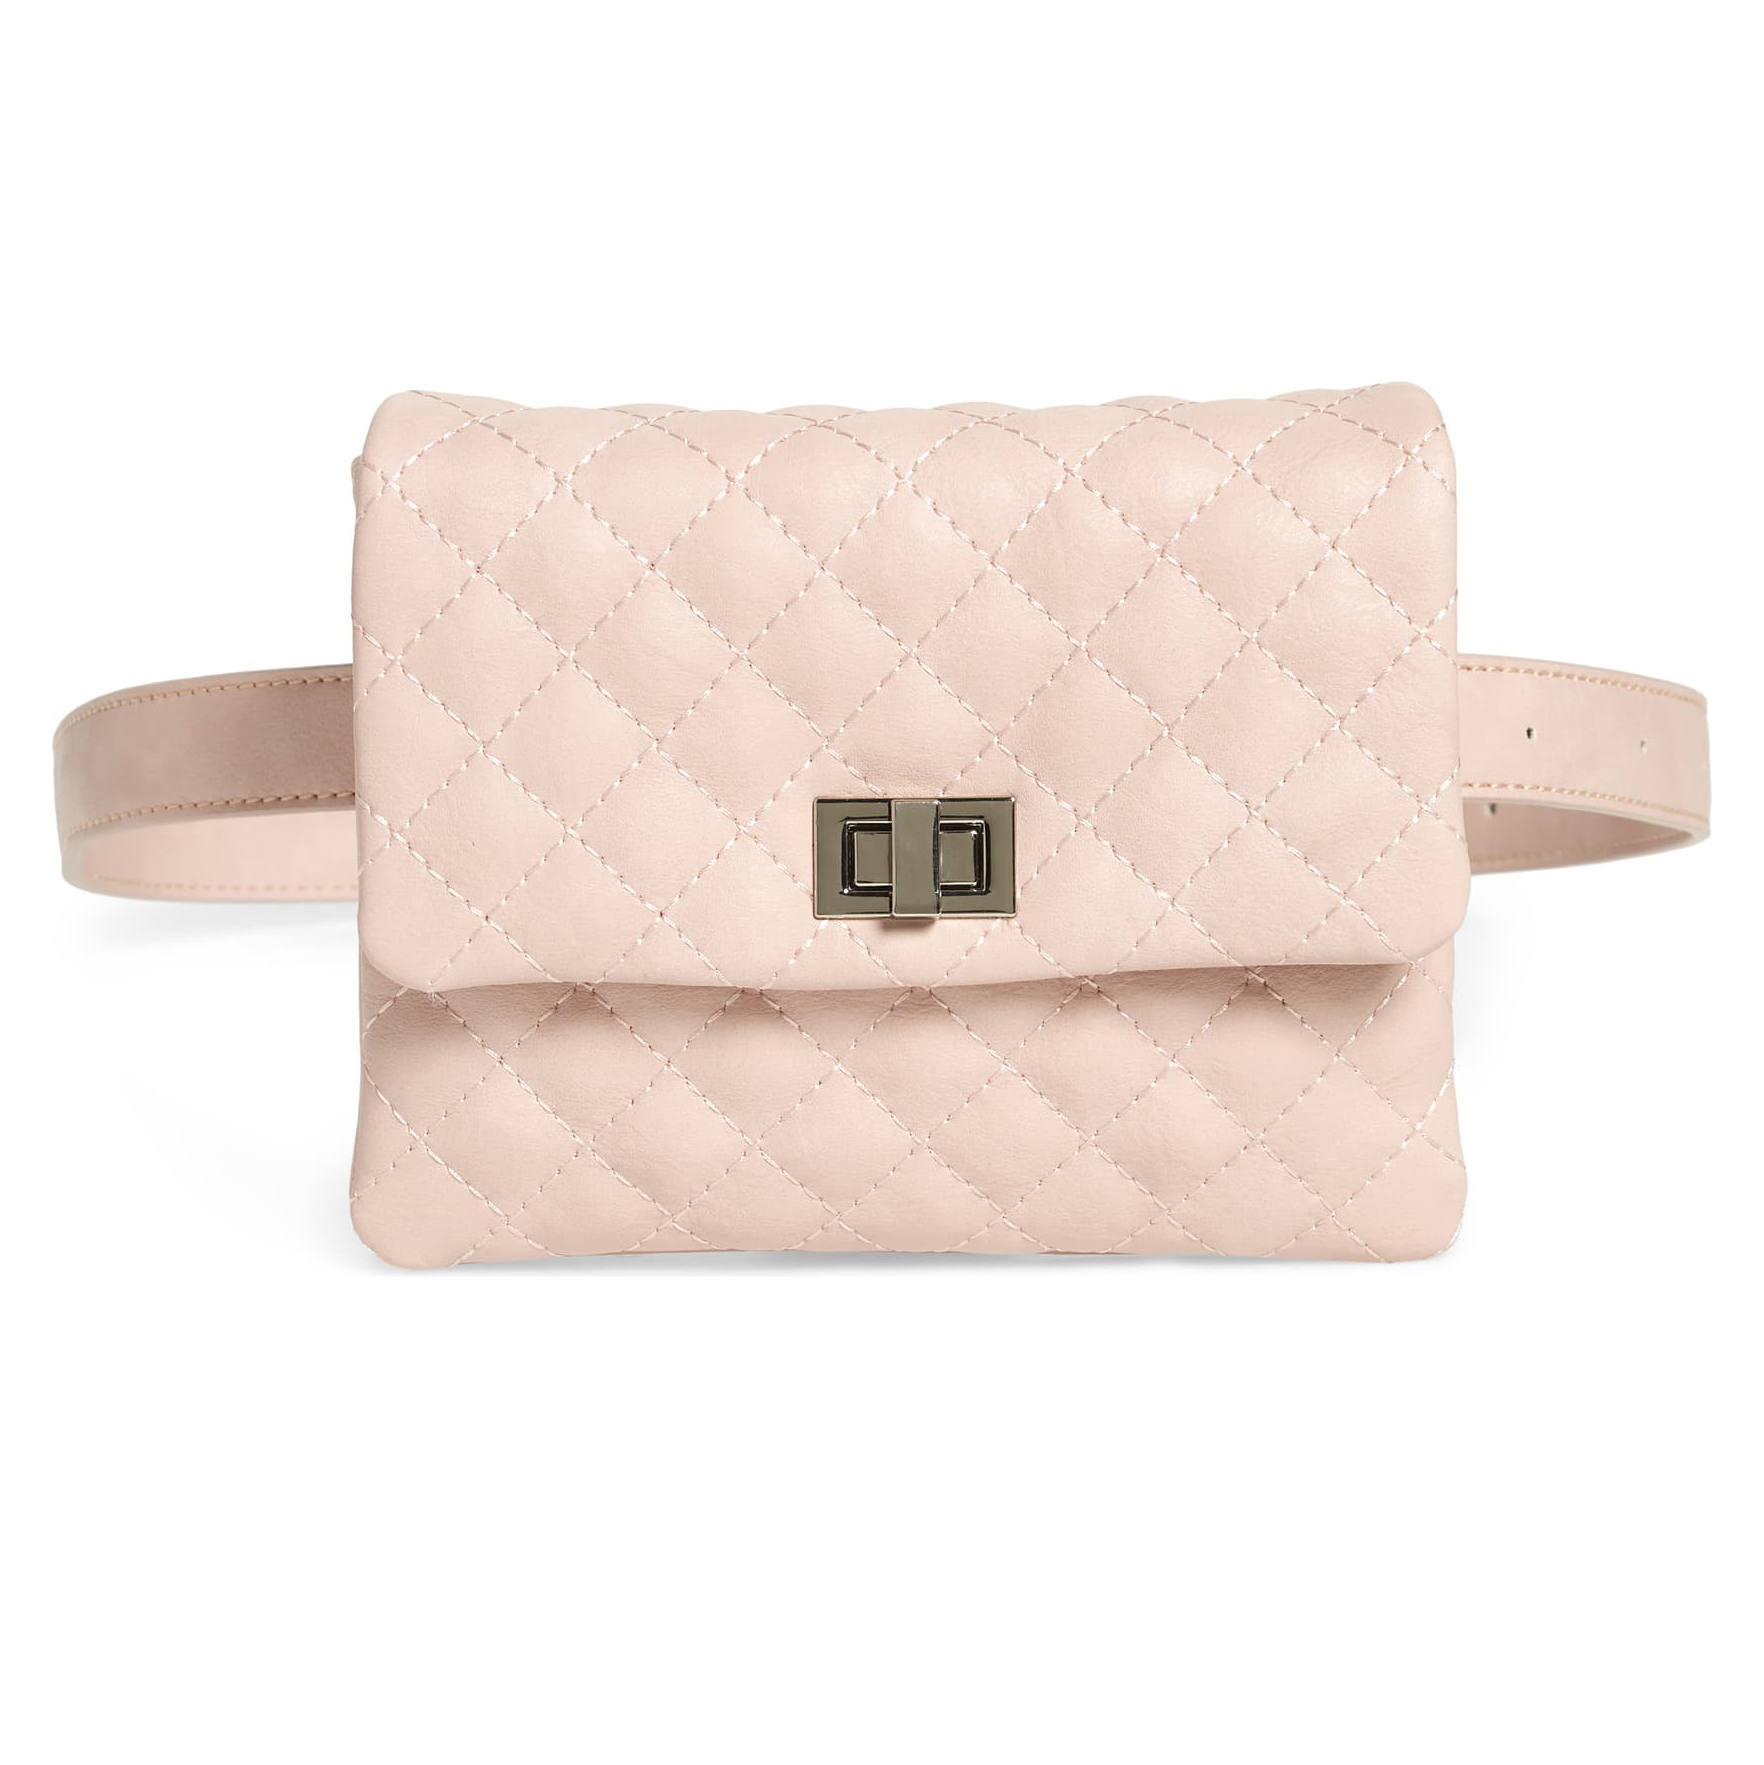 Mali + Lili Quilted Vegan Leather Belt Bag